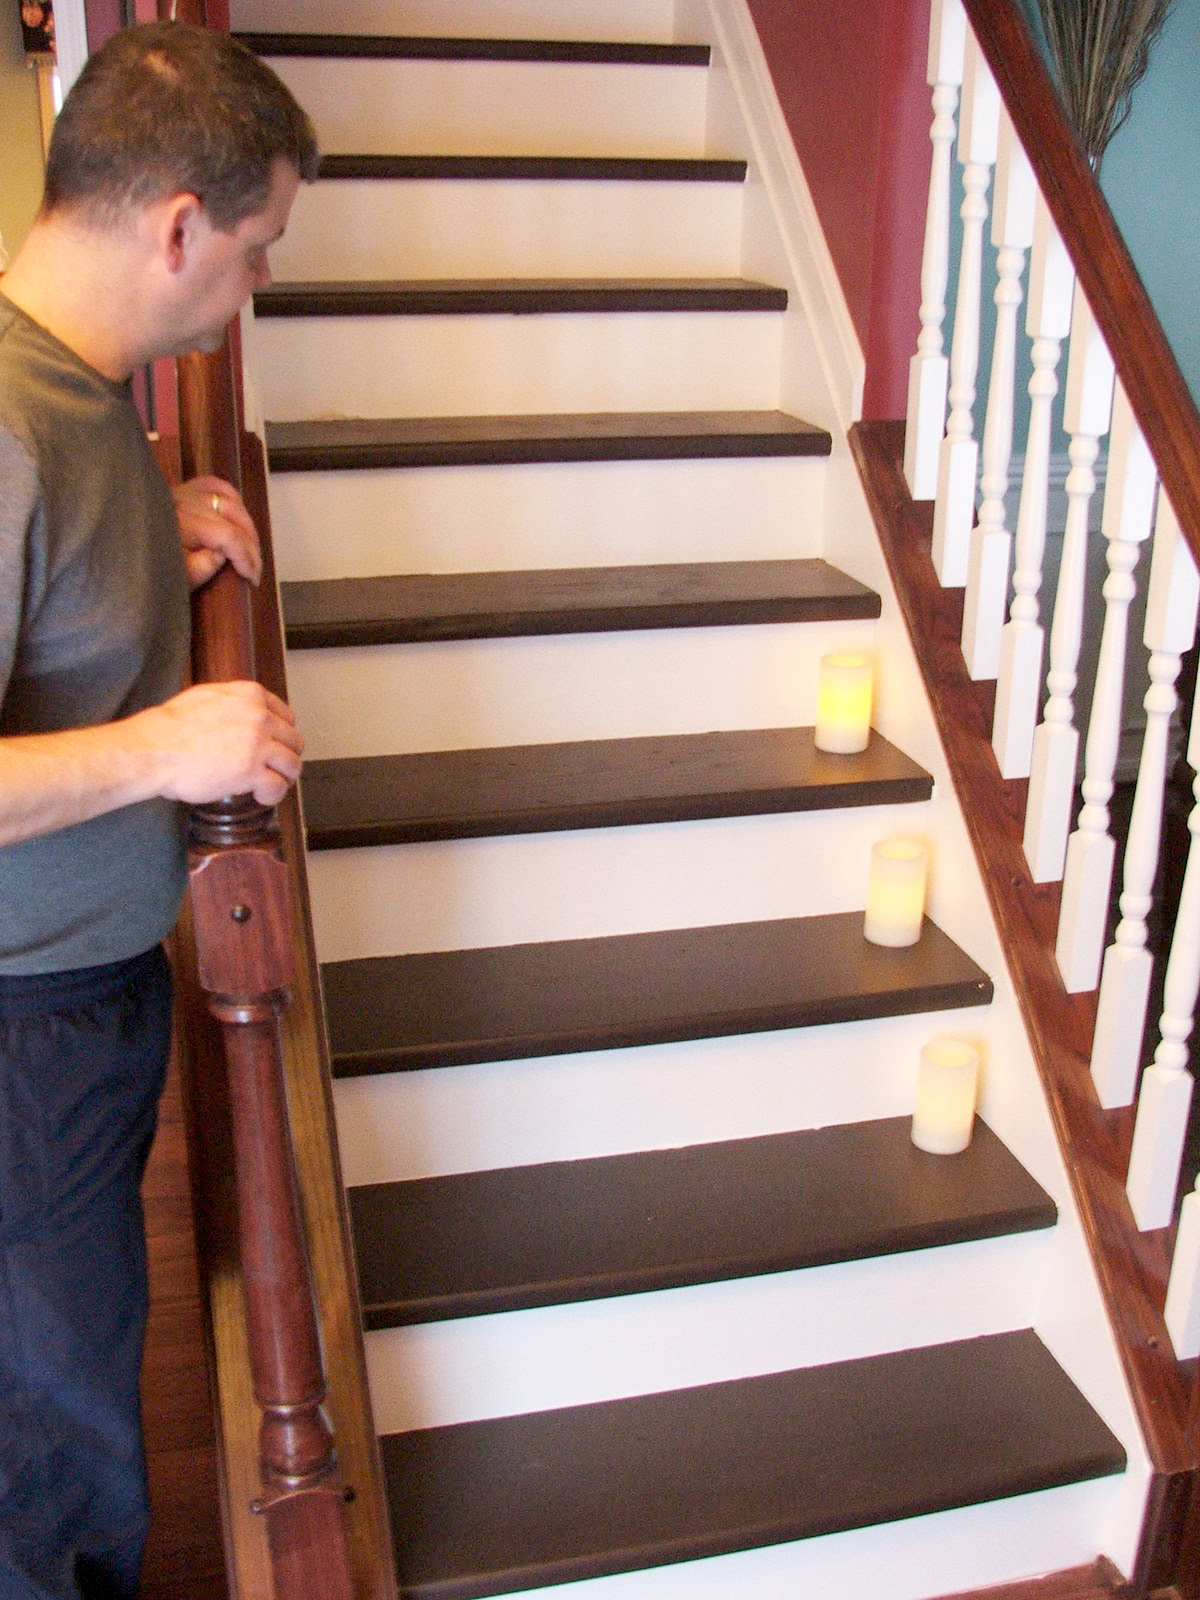 Redo Stairs Cheap Remodelaholic Under 100 Carpeted Stair To Wooden Tread Makeover Diy